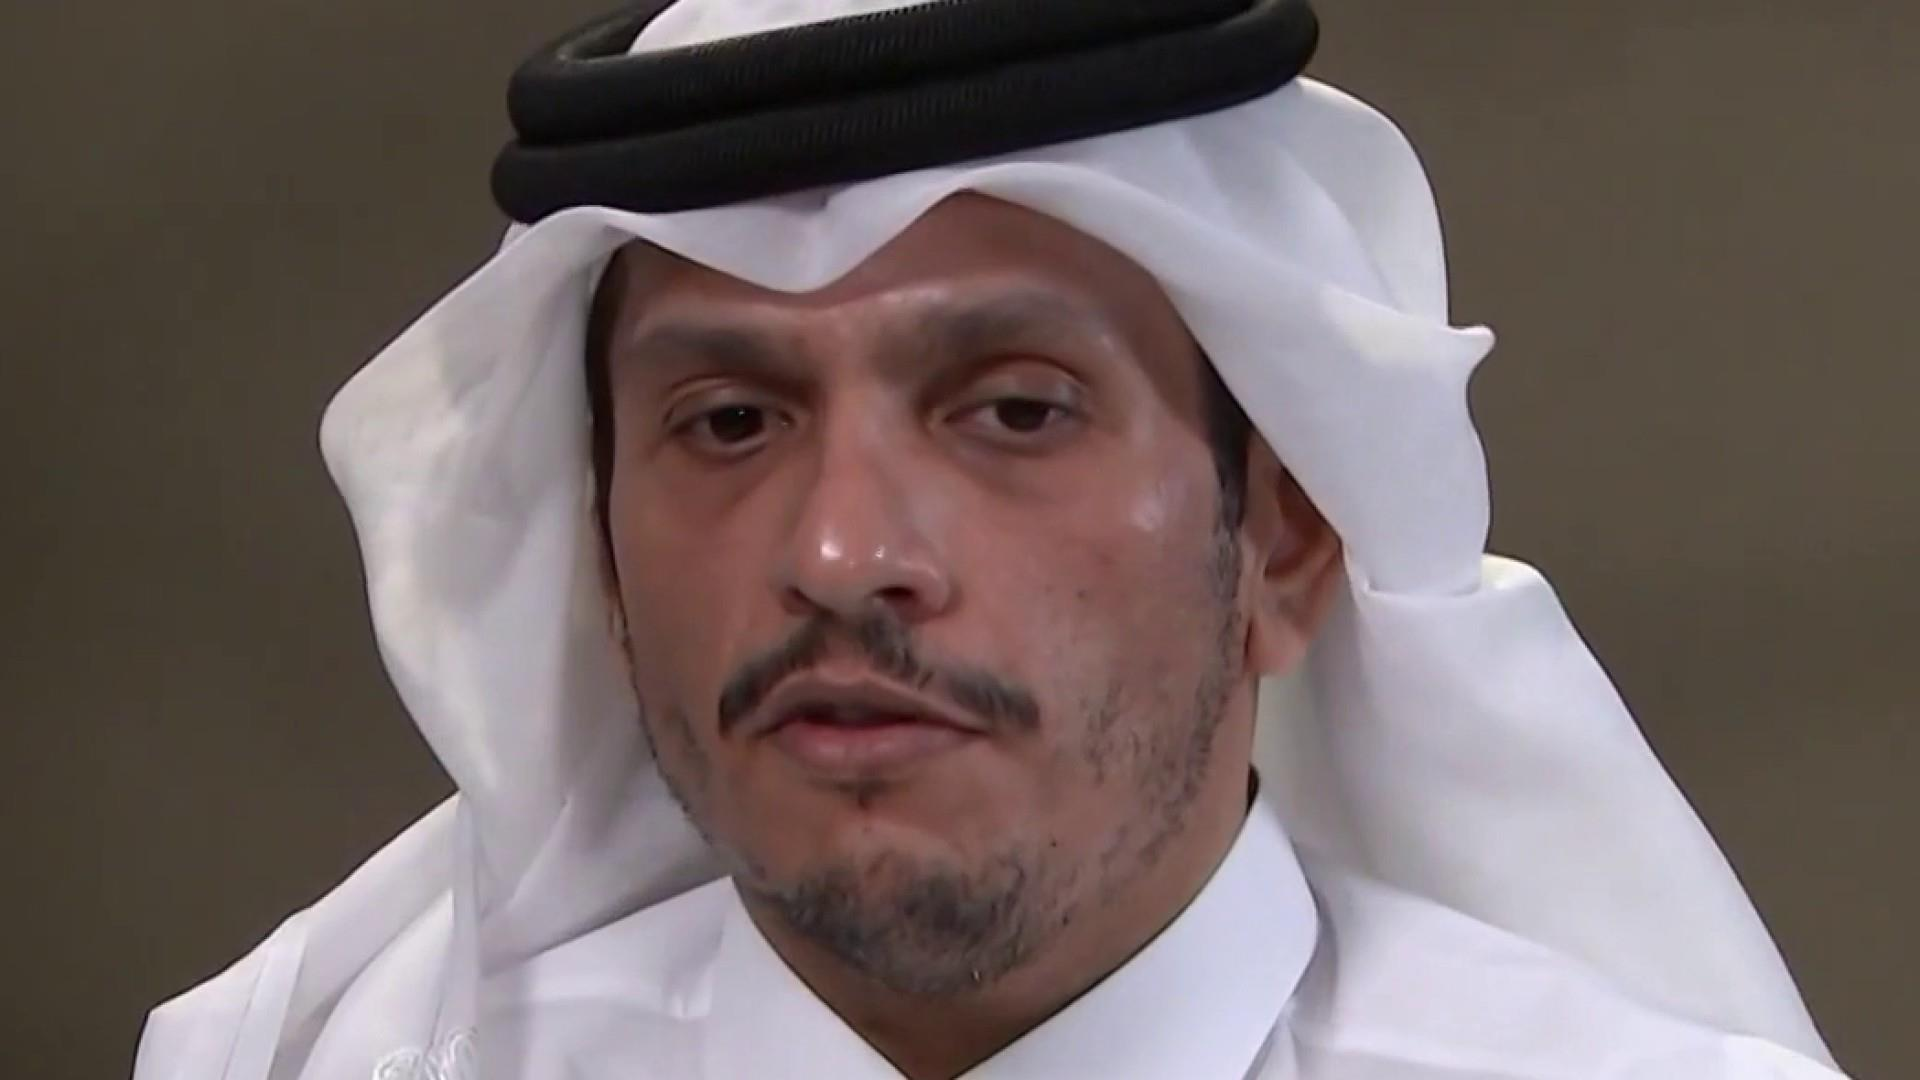 Qatar Foreign Minister on Turkey's Syria assault